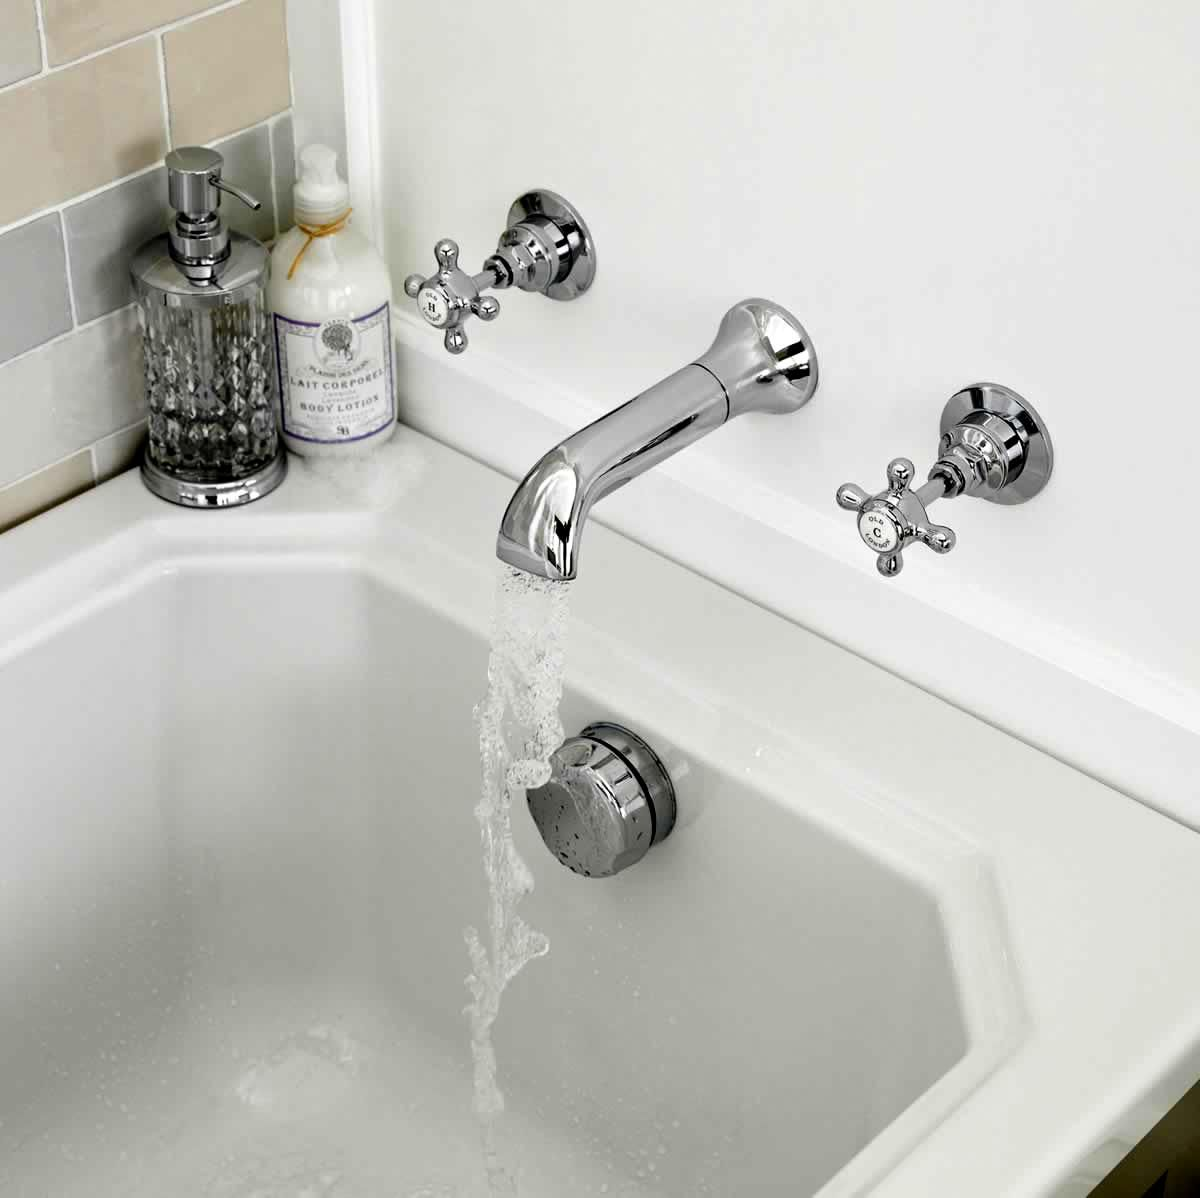 Old London Edwardian Wall Mounted Bath Spout and Taps : UK Bathrooms